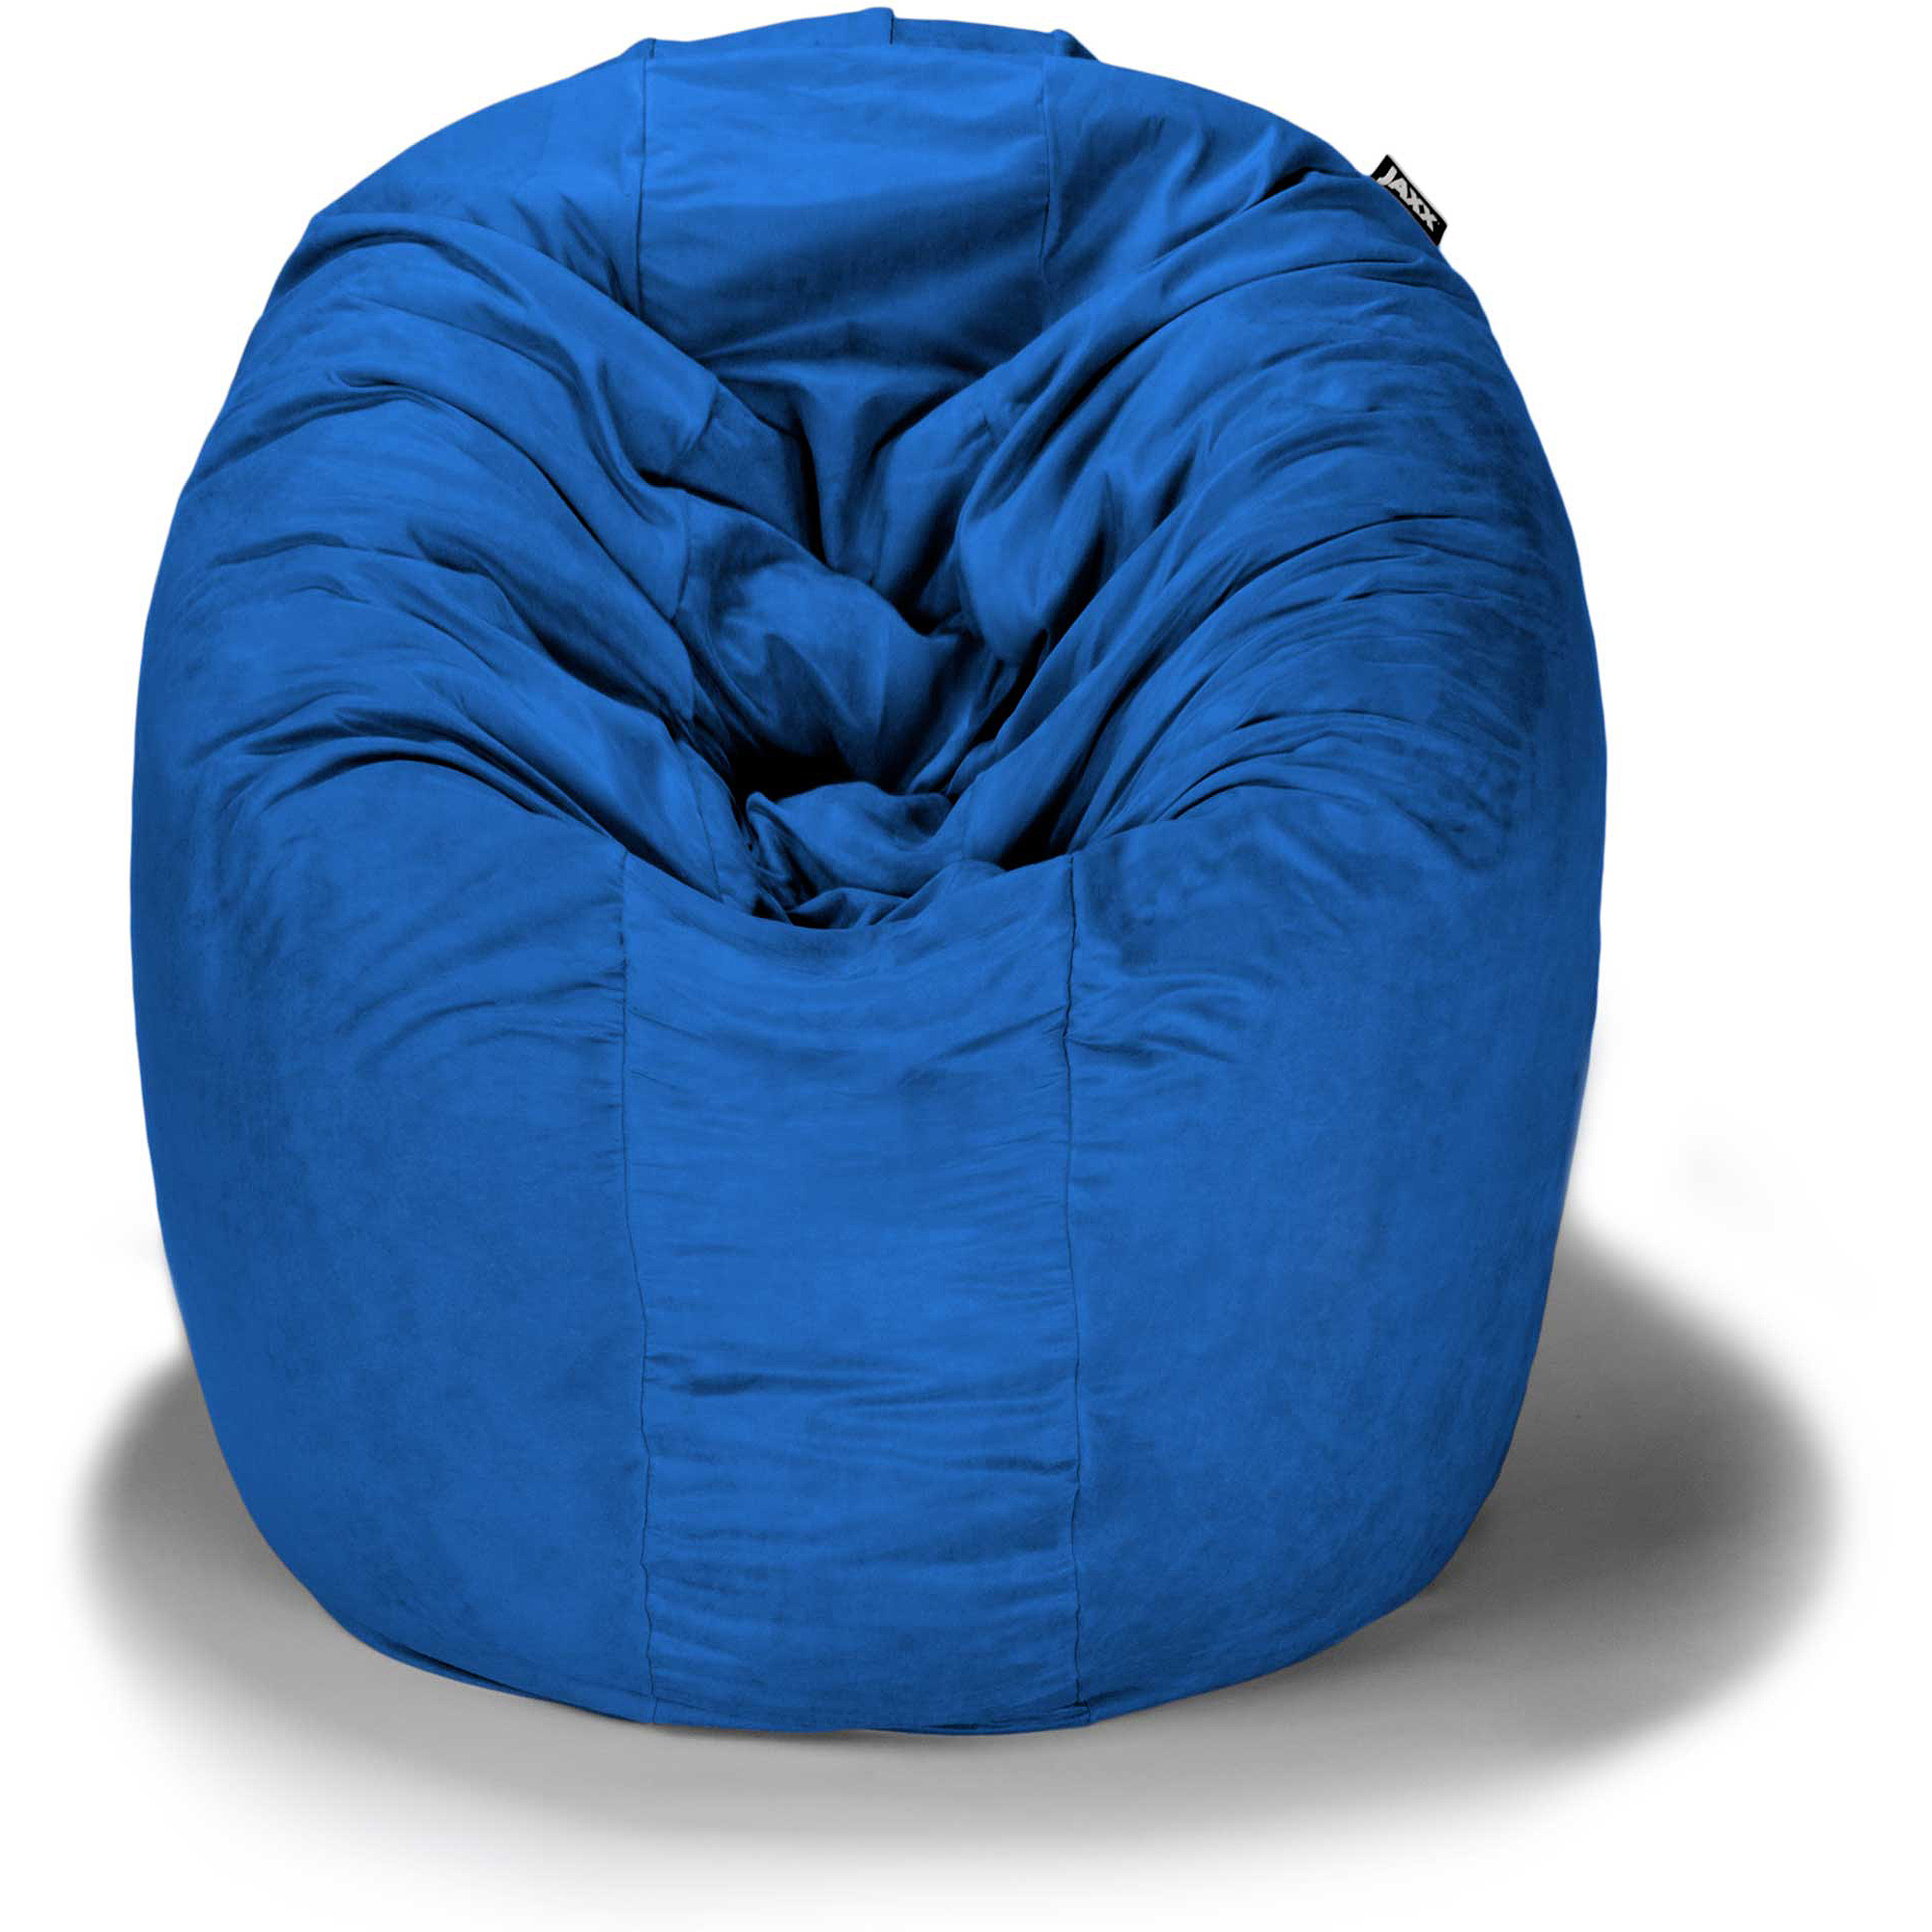 Jaxx Cocoon Bean Bag